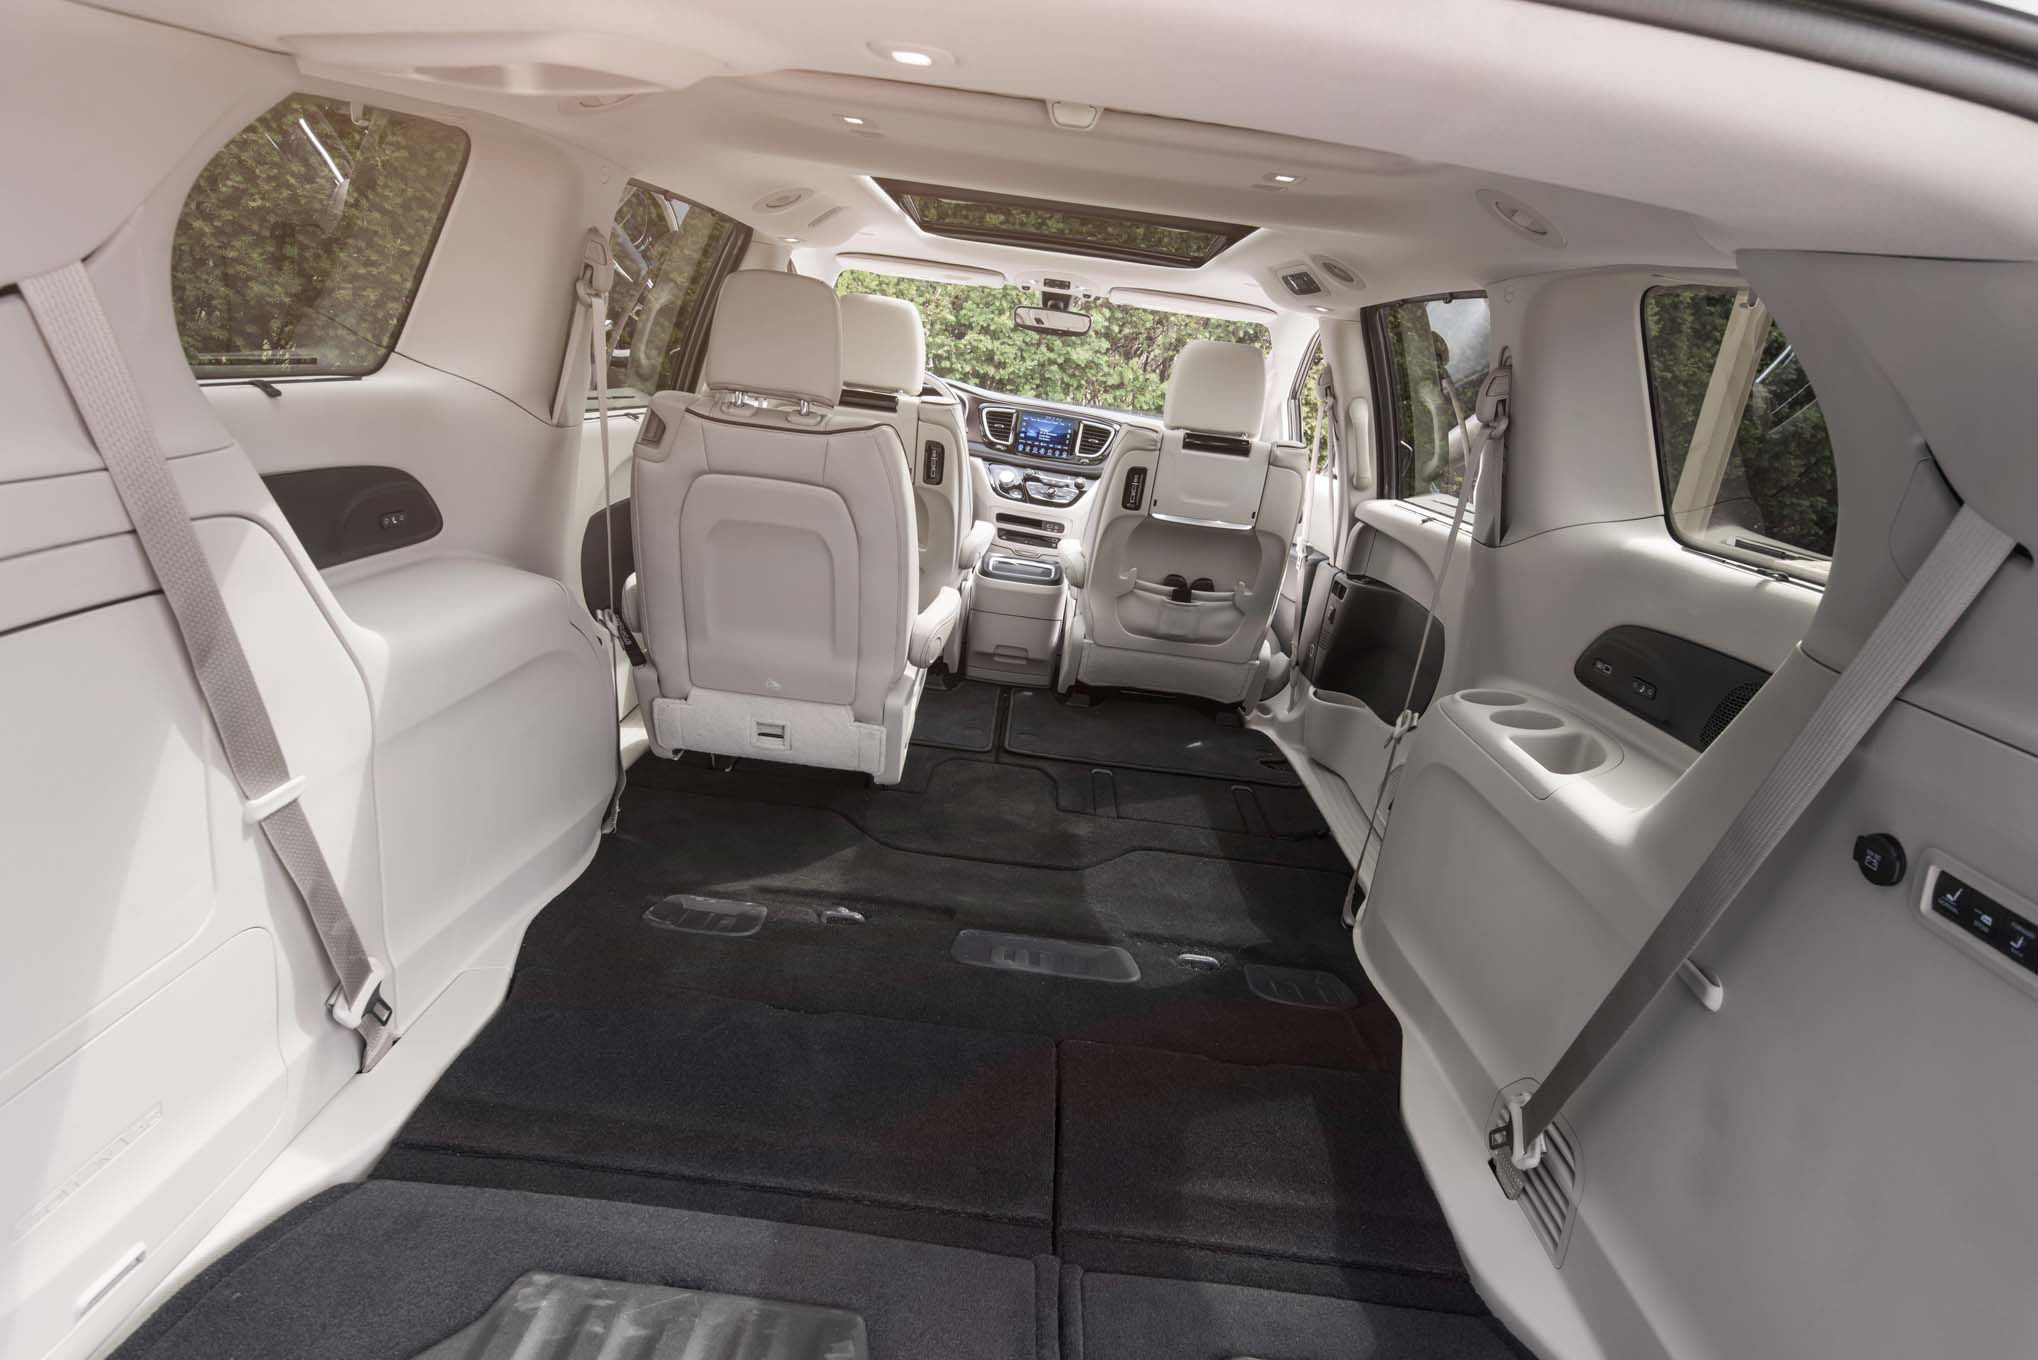 2017 Chrysler Pacifica Rear Interior Seats Folded Down